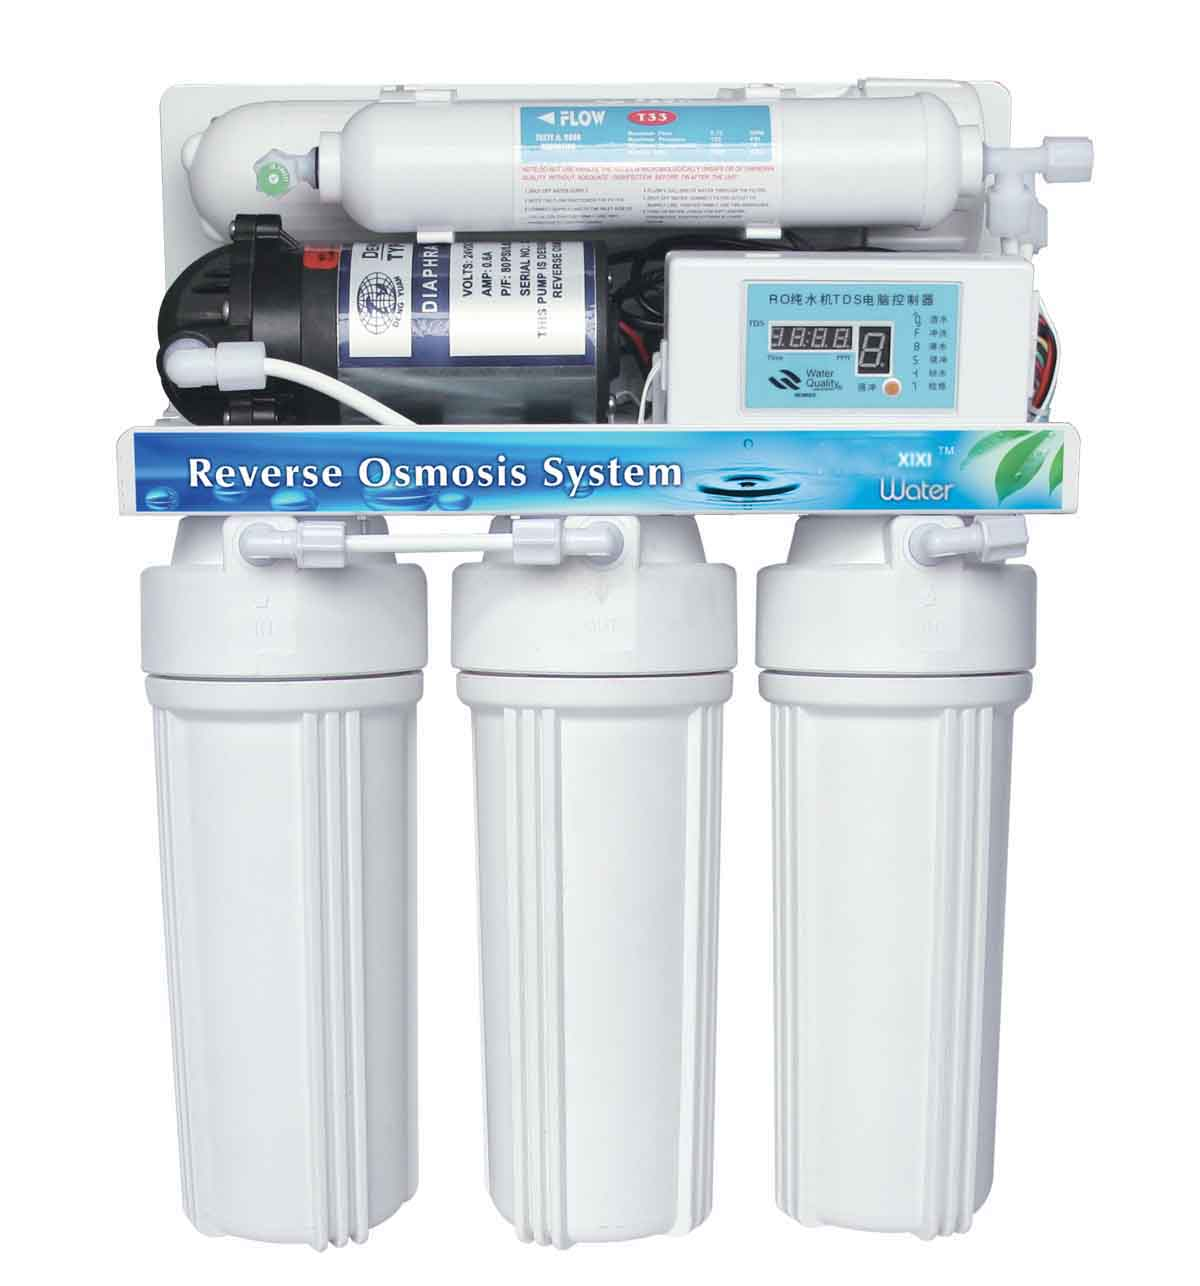 XIXI Wholesale Durable 50 75 100 gpd Reverse Osmosis Water Filter For Home